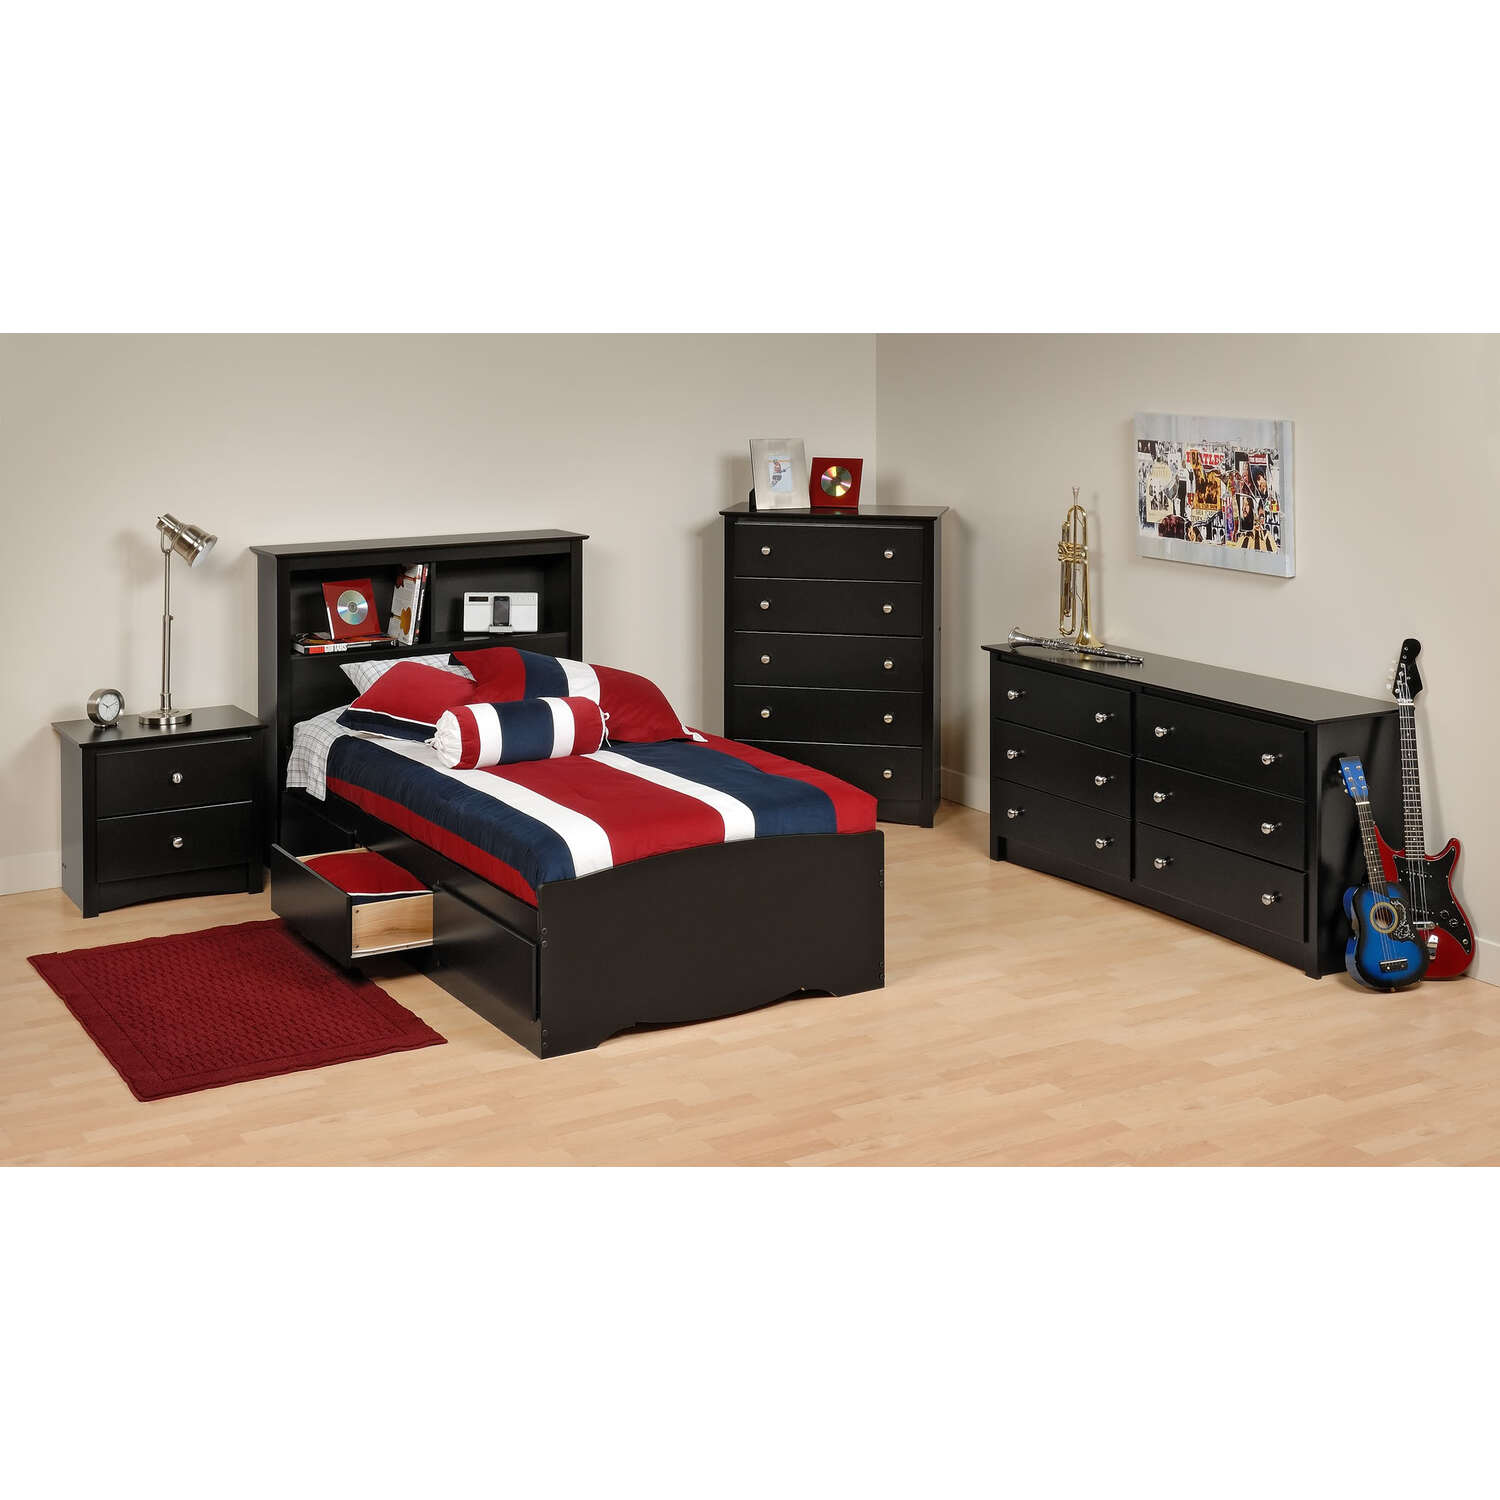 Cute Twin Bedroom Set Decor